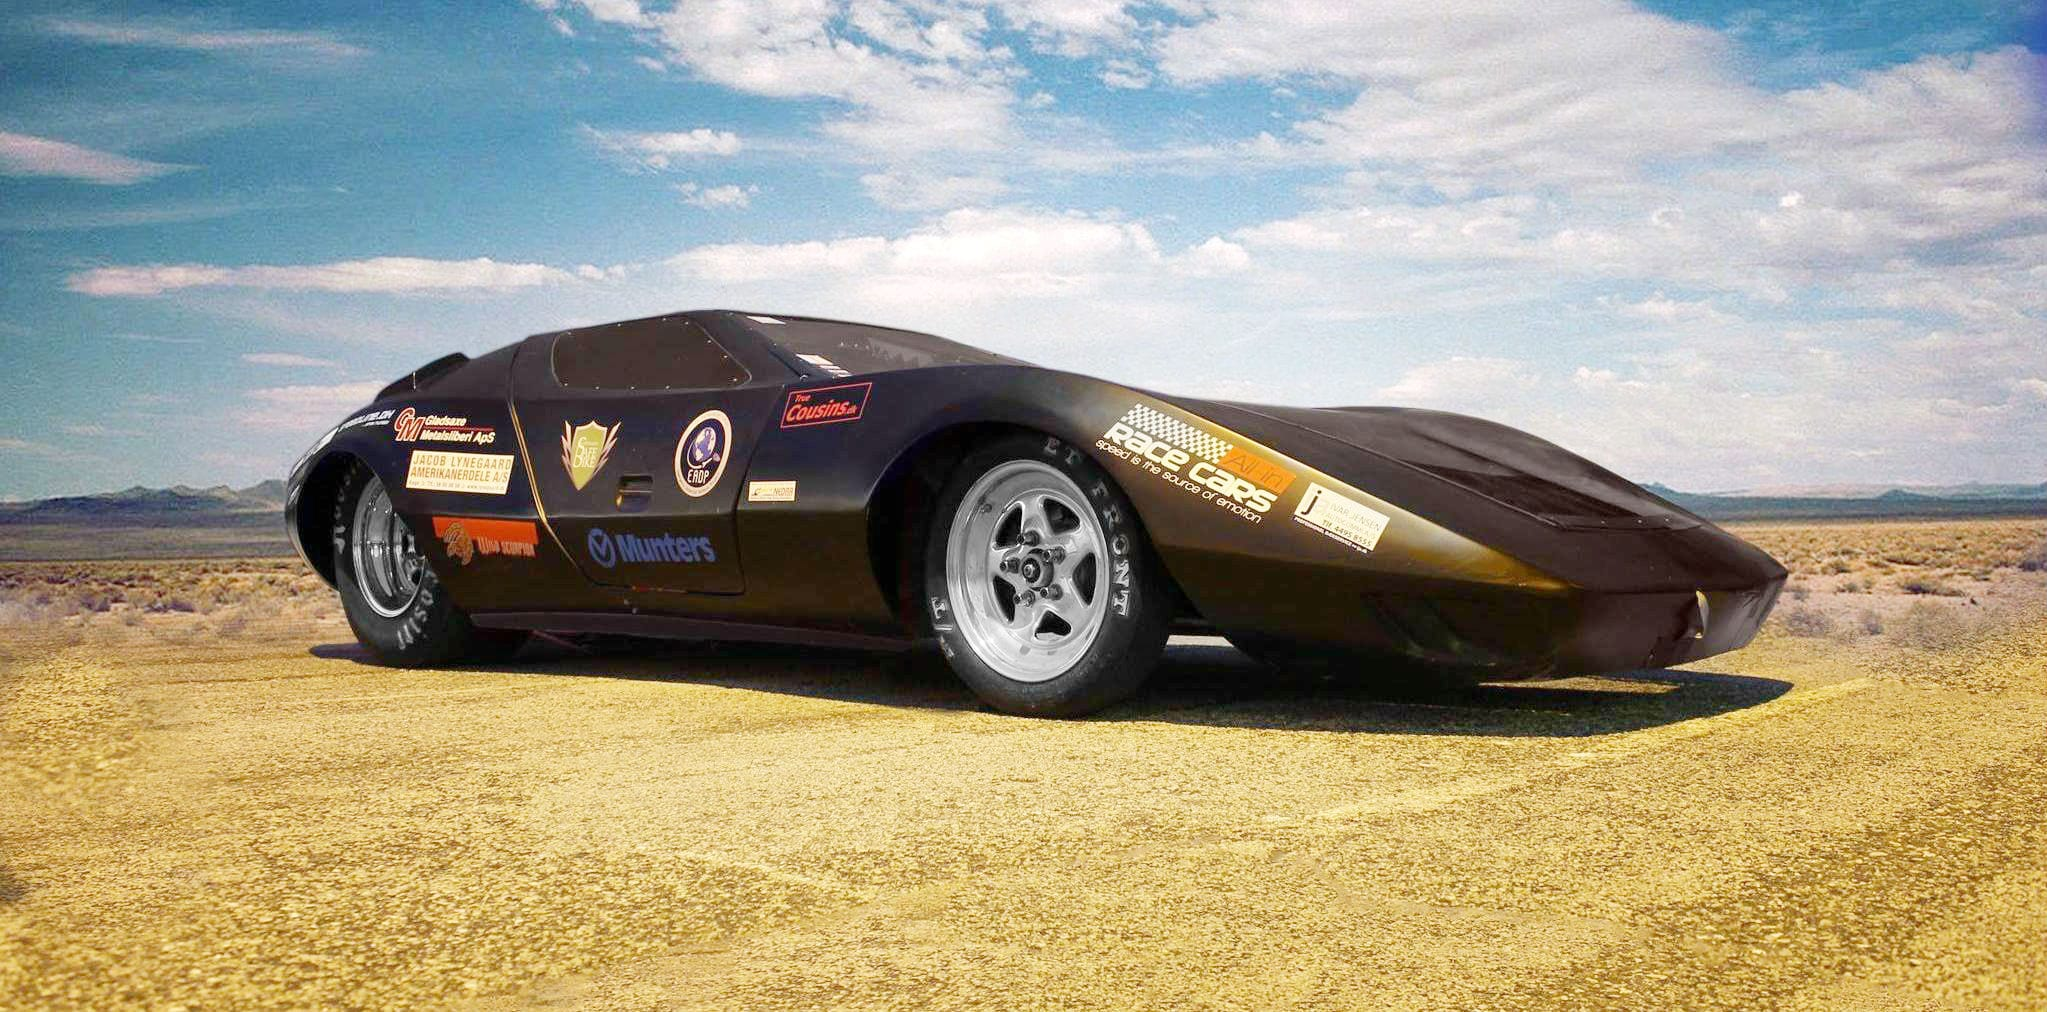 Meet the World's Quickest 1/4 Mile Electric Doorslammer